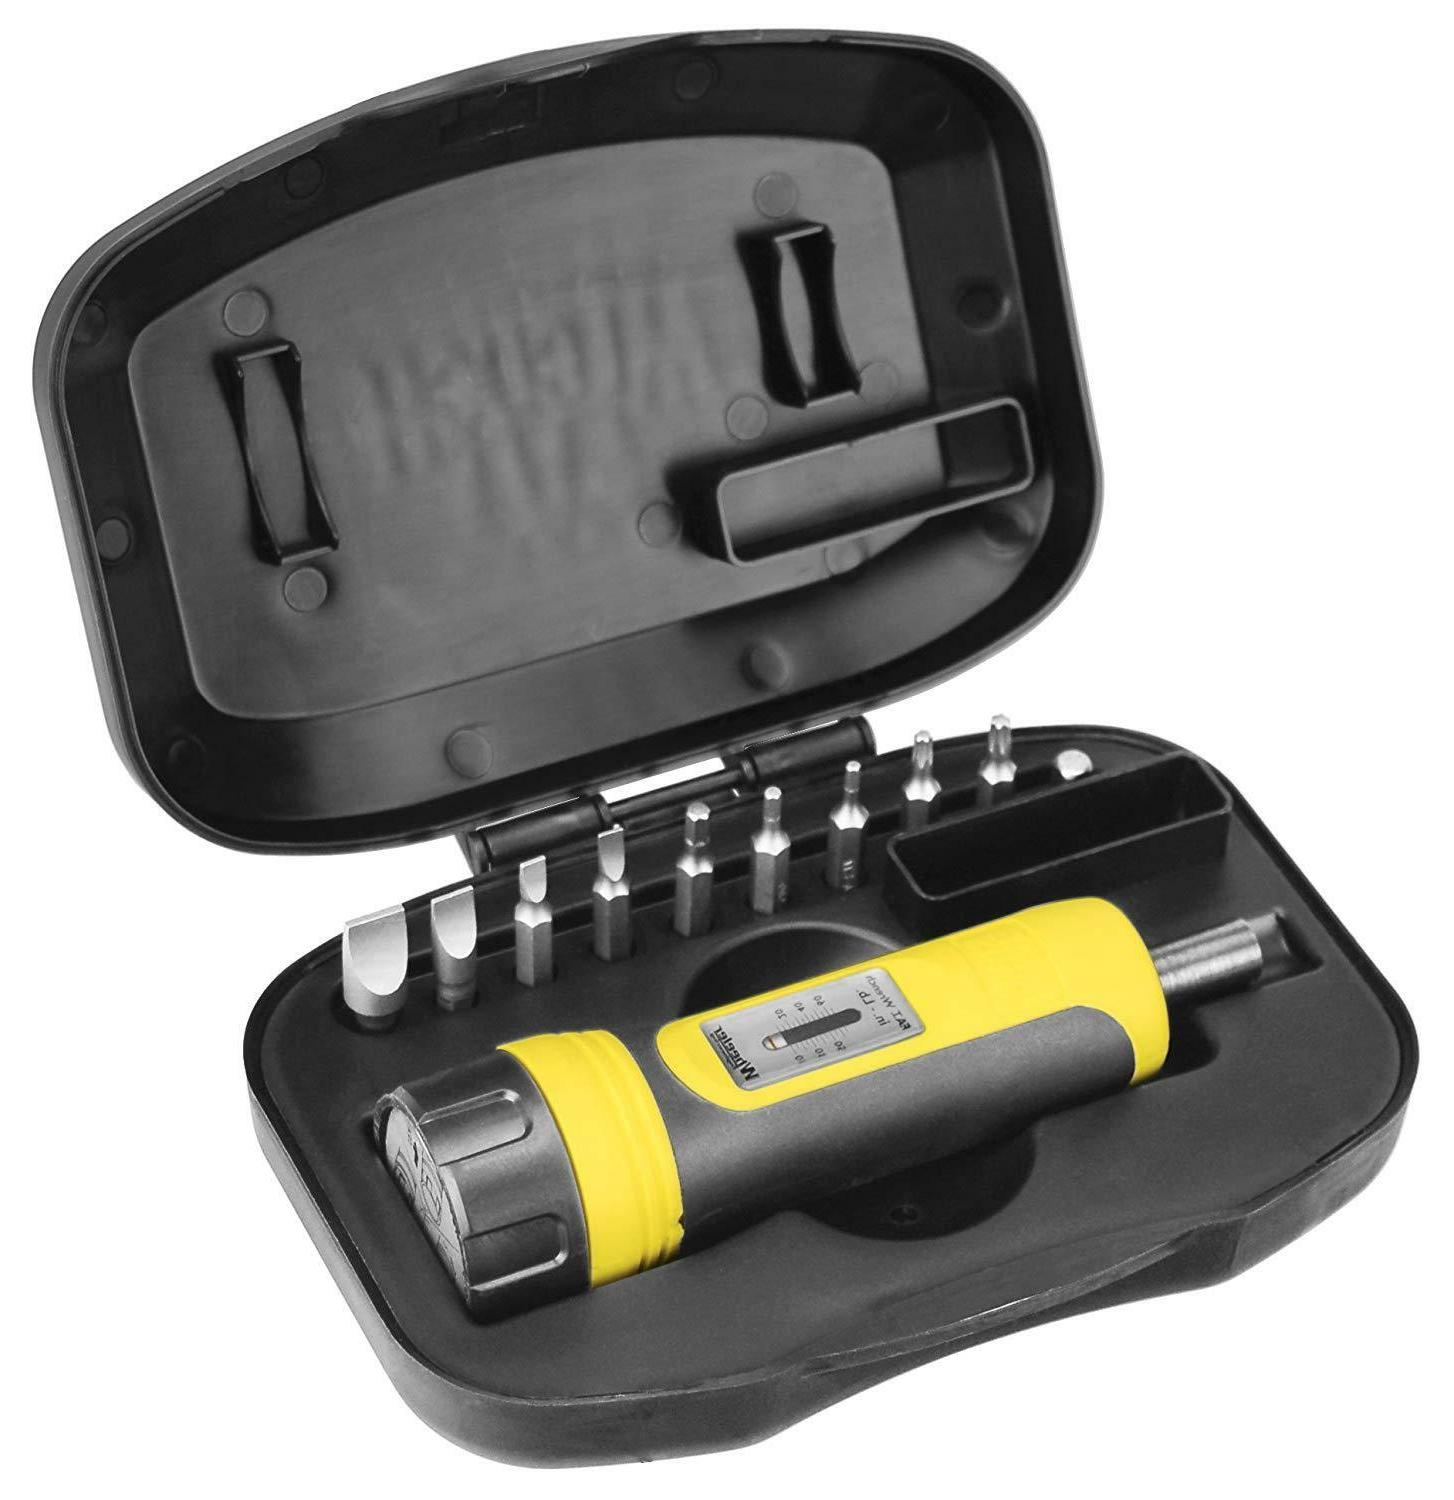 Rifle Torque Wrench Set w/ Case FAT Firearms Accurizing Tool